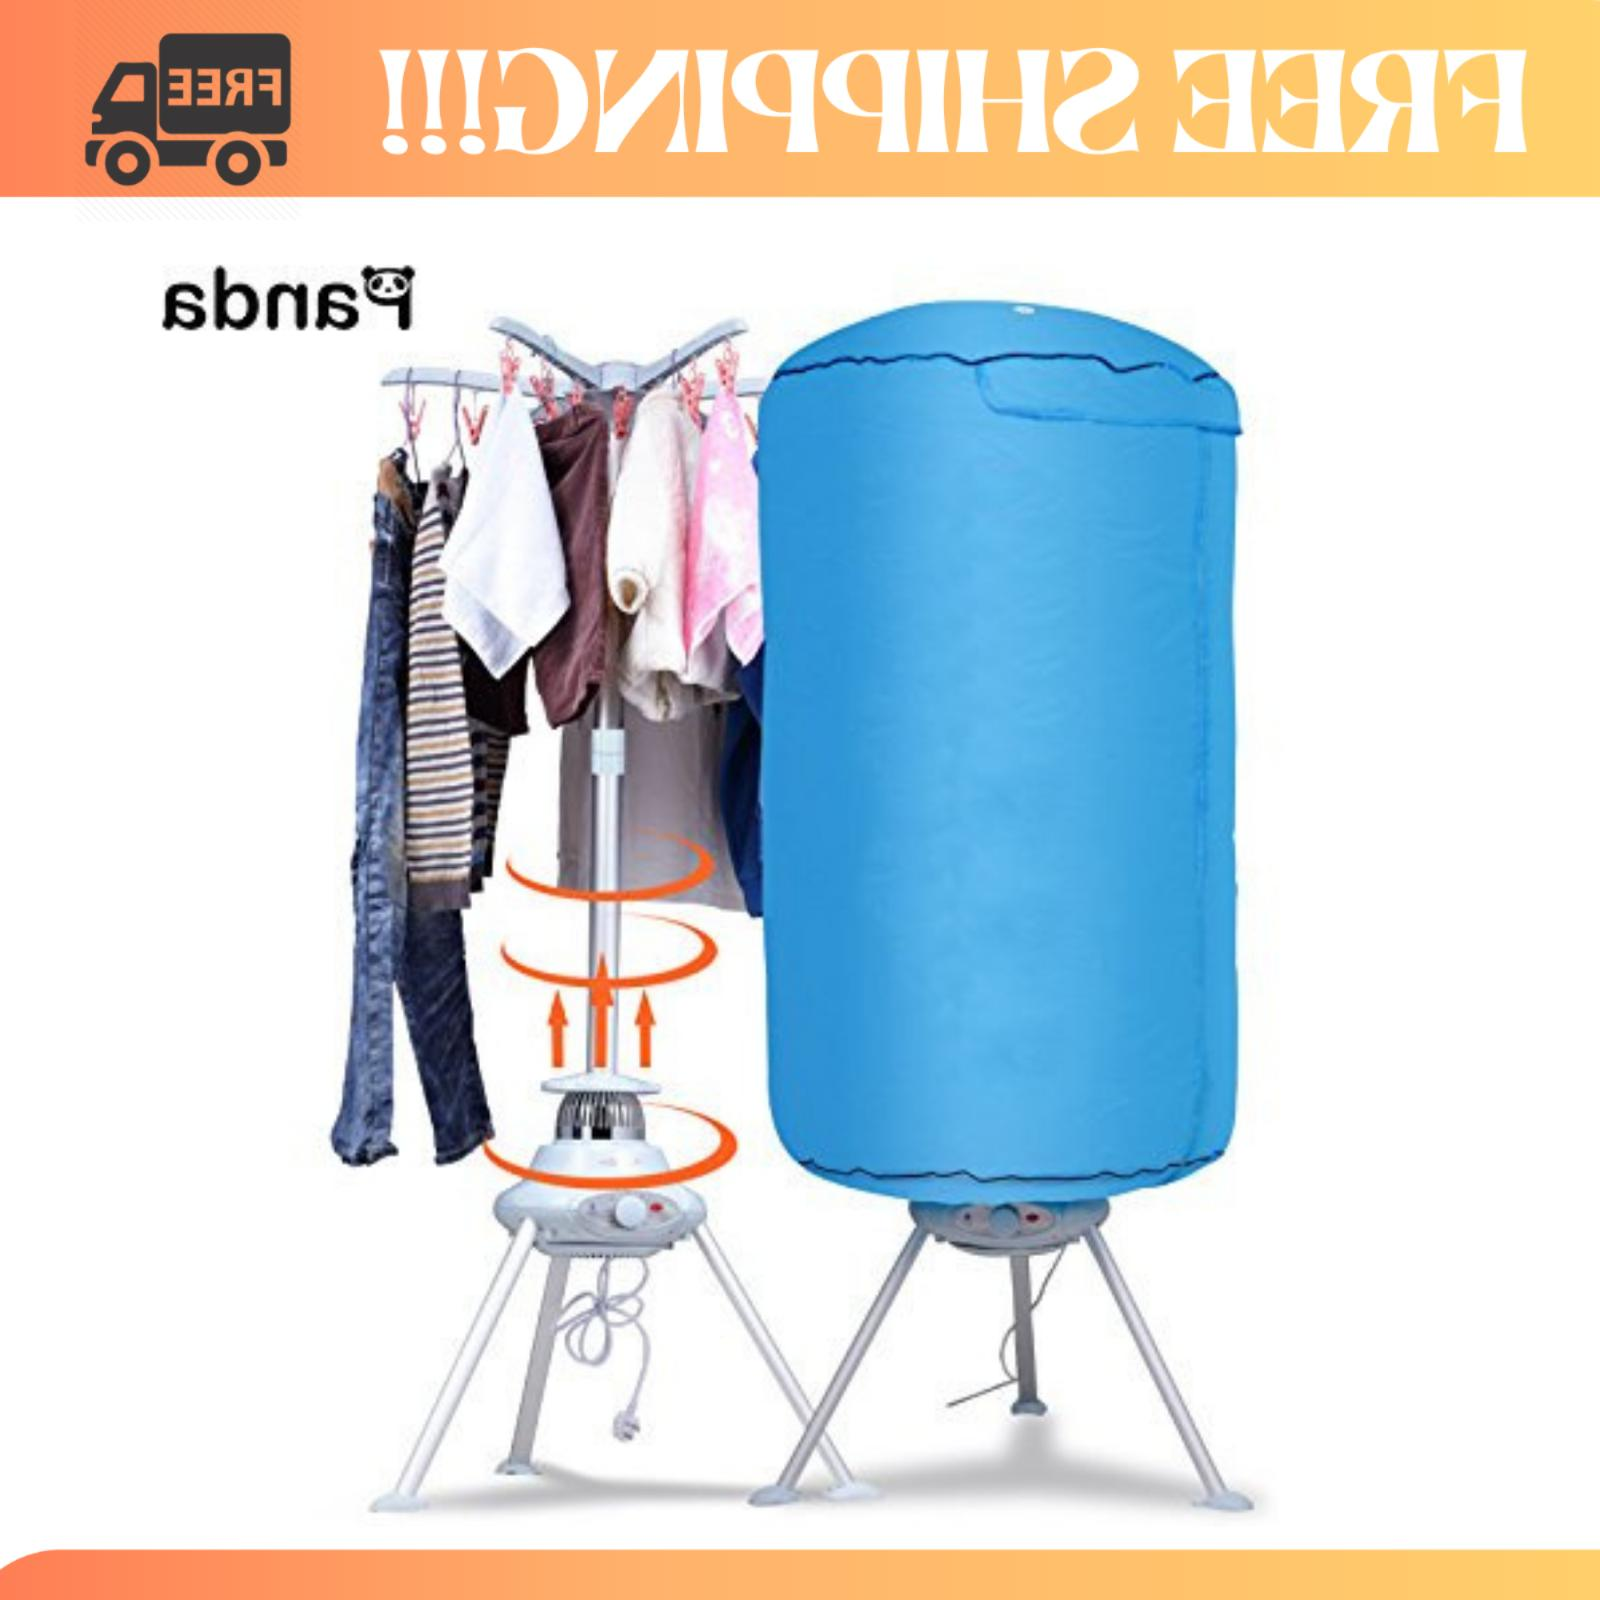 Portable Clothes Dryer Ventless Foldable Drying Machine With